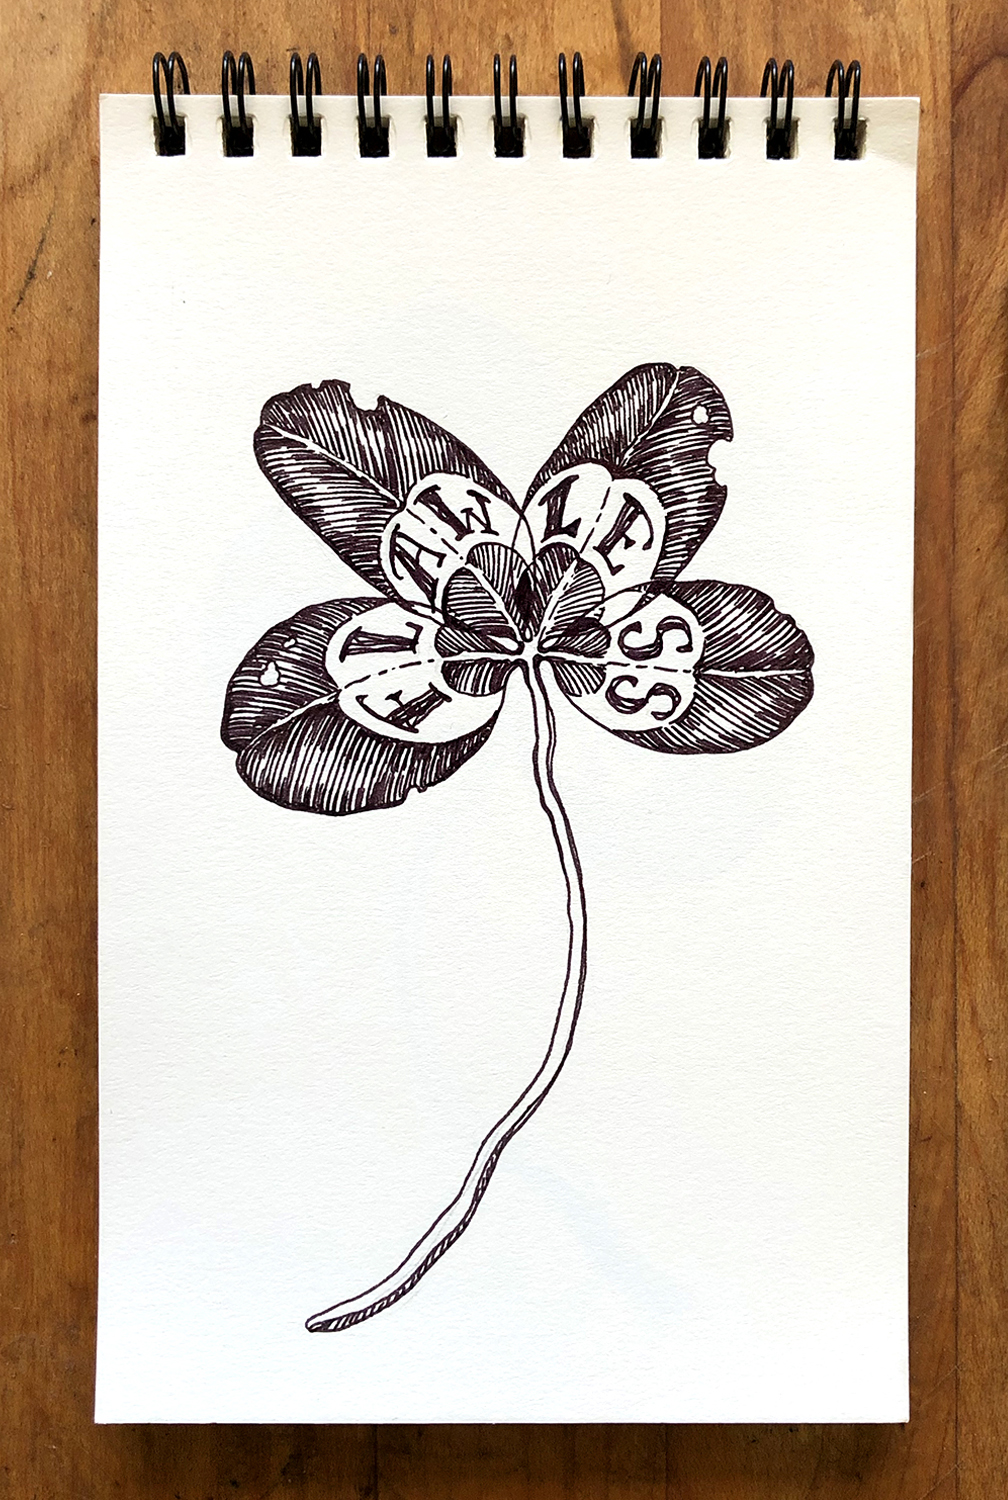 Clover Drawings